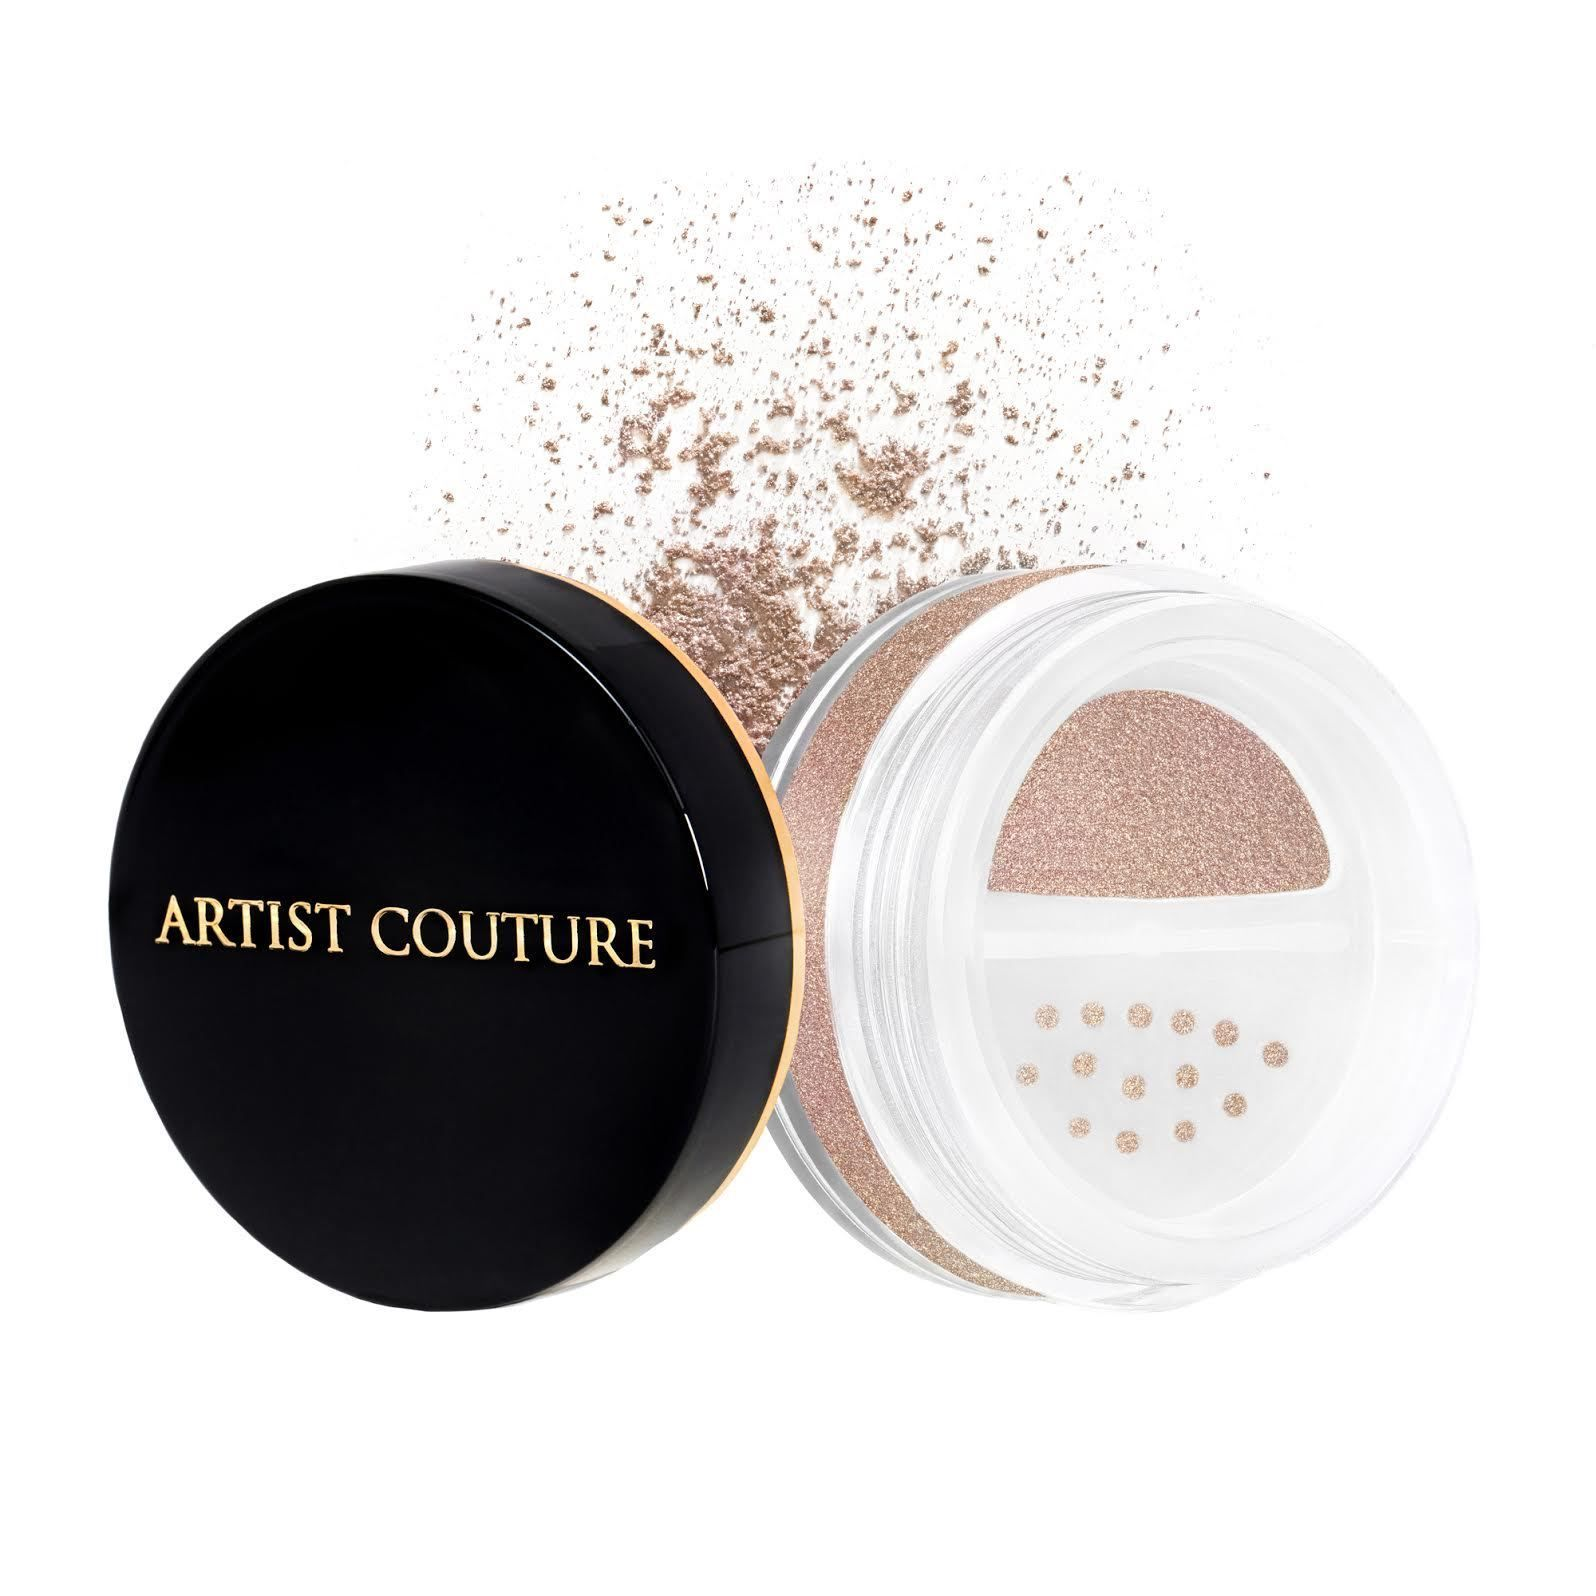 Diamond Glow Powder Conceited Artist couture, Makeup to